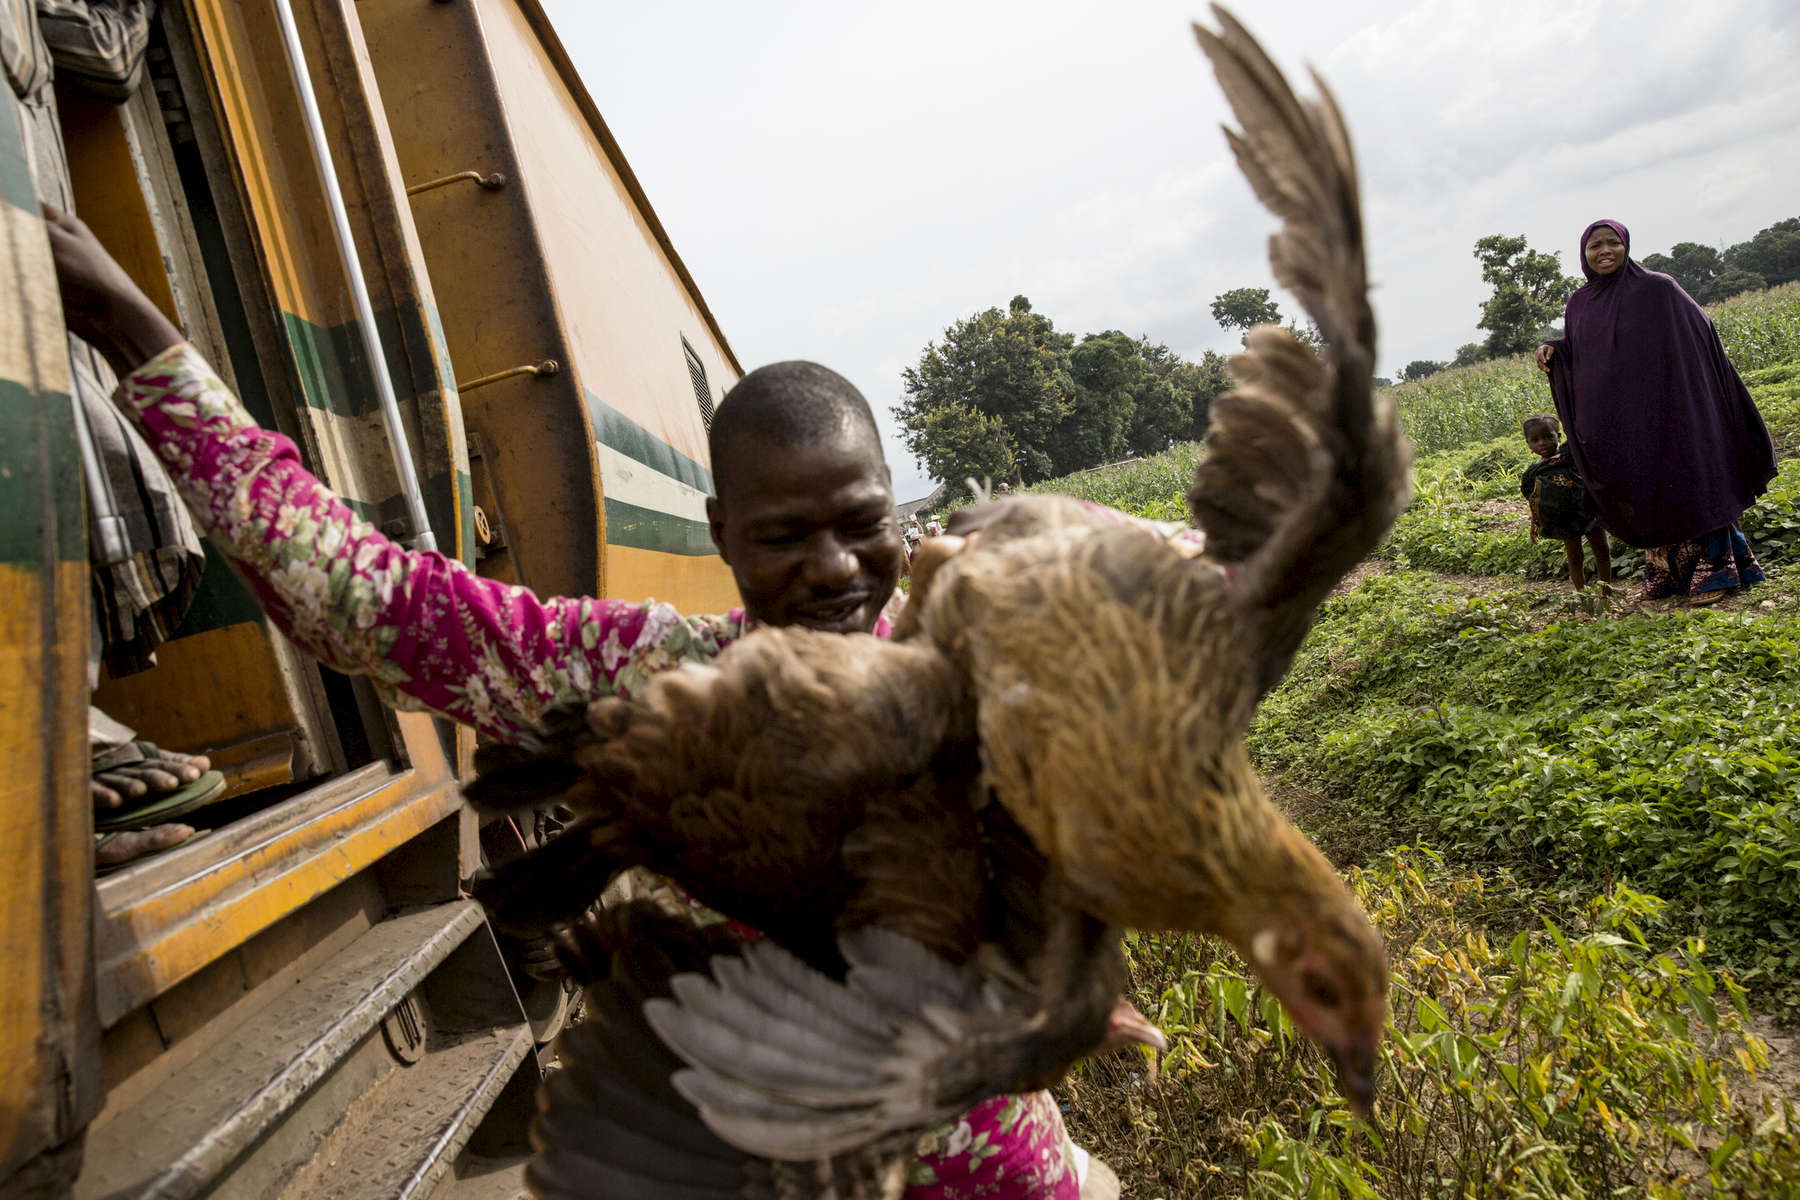 A man gets off the train with two chickens that he purchased a few hours earlier at the Guni stop in Niger State.